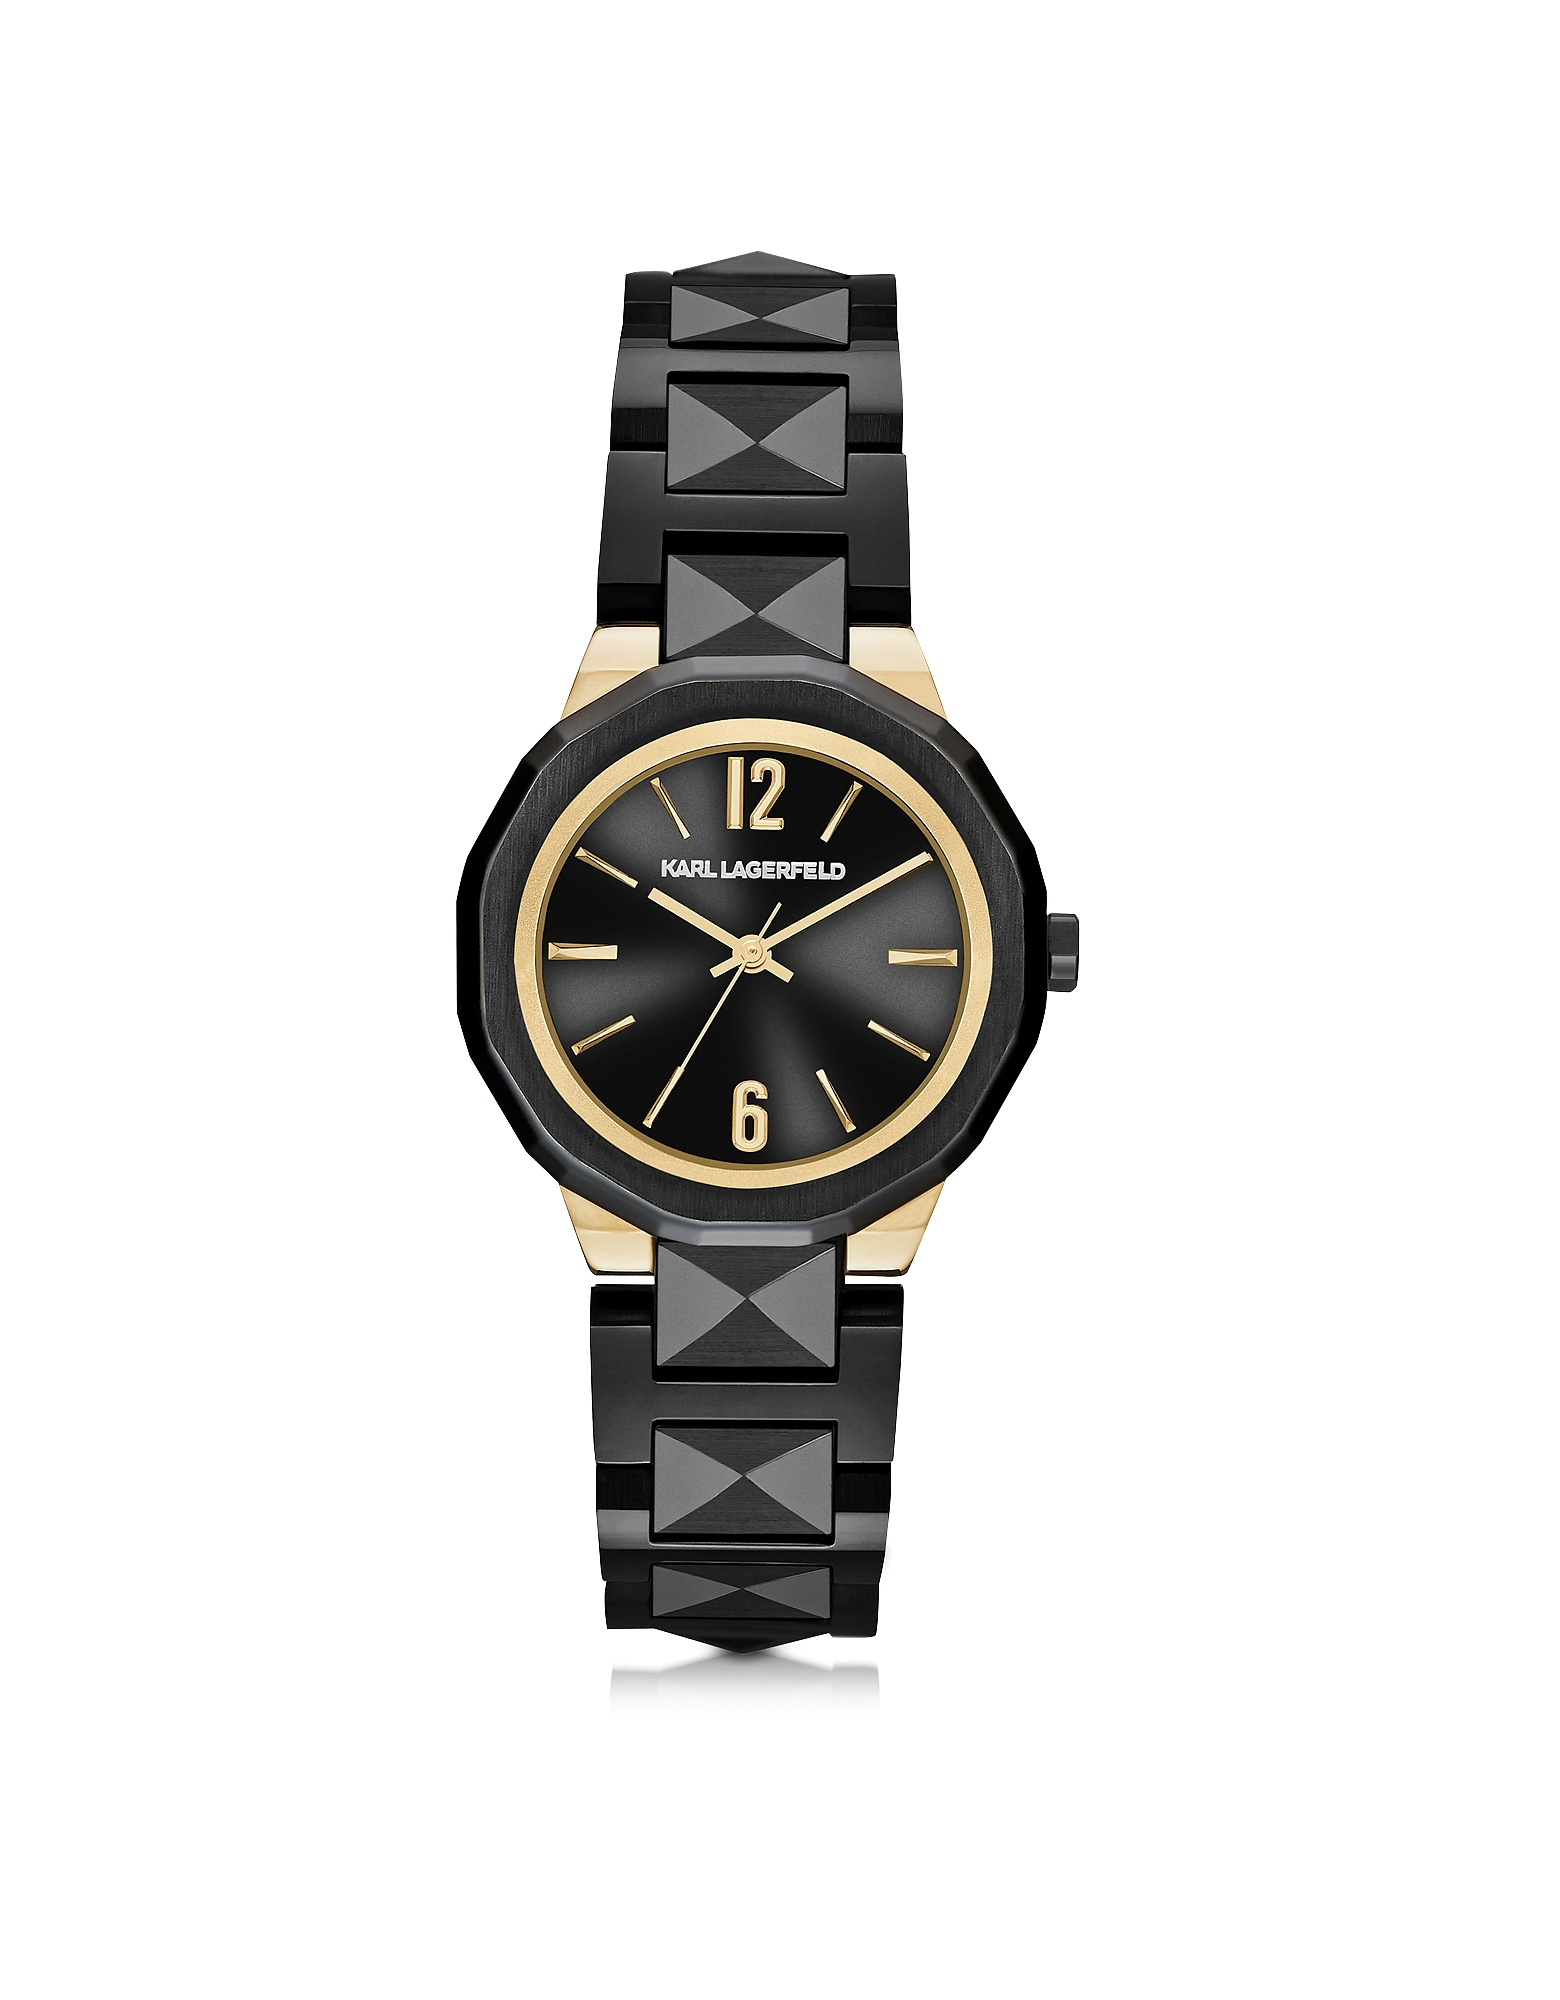 Karl Lagerfeld Women's Watches, Joleigh Black Iconic Women's Watch